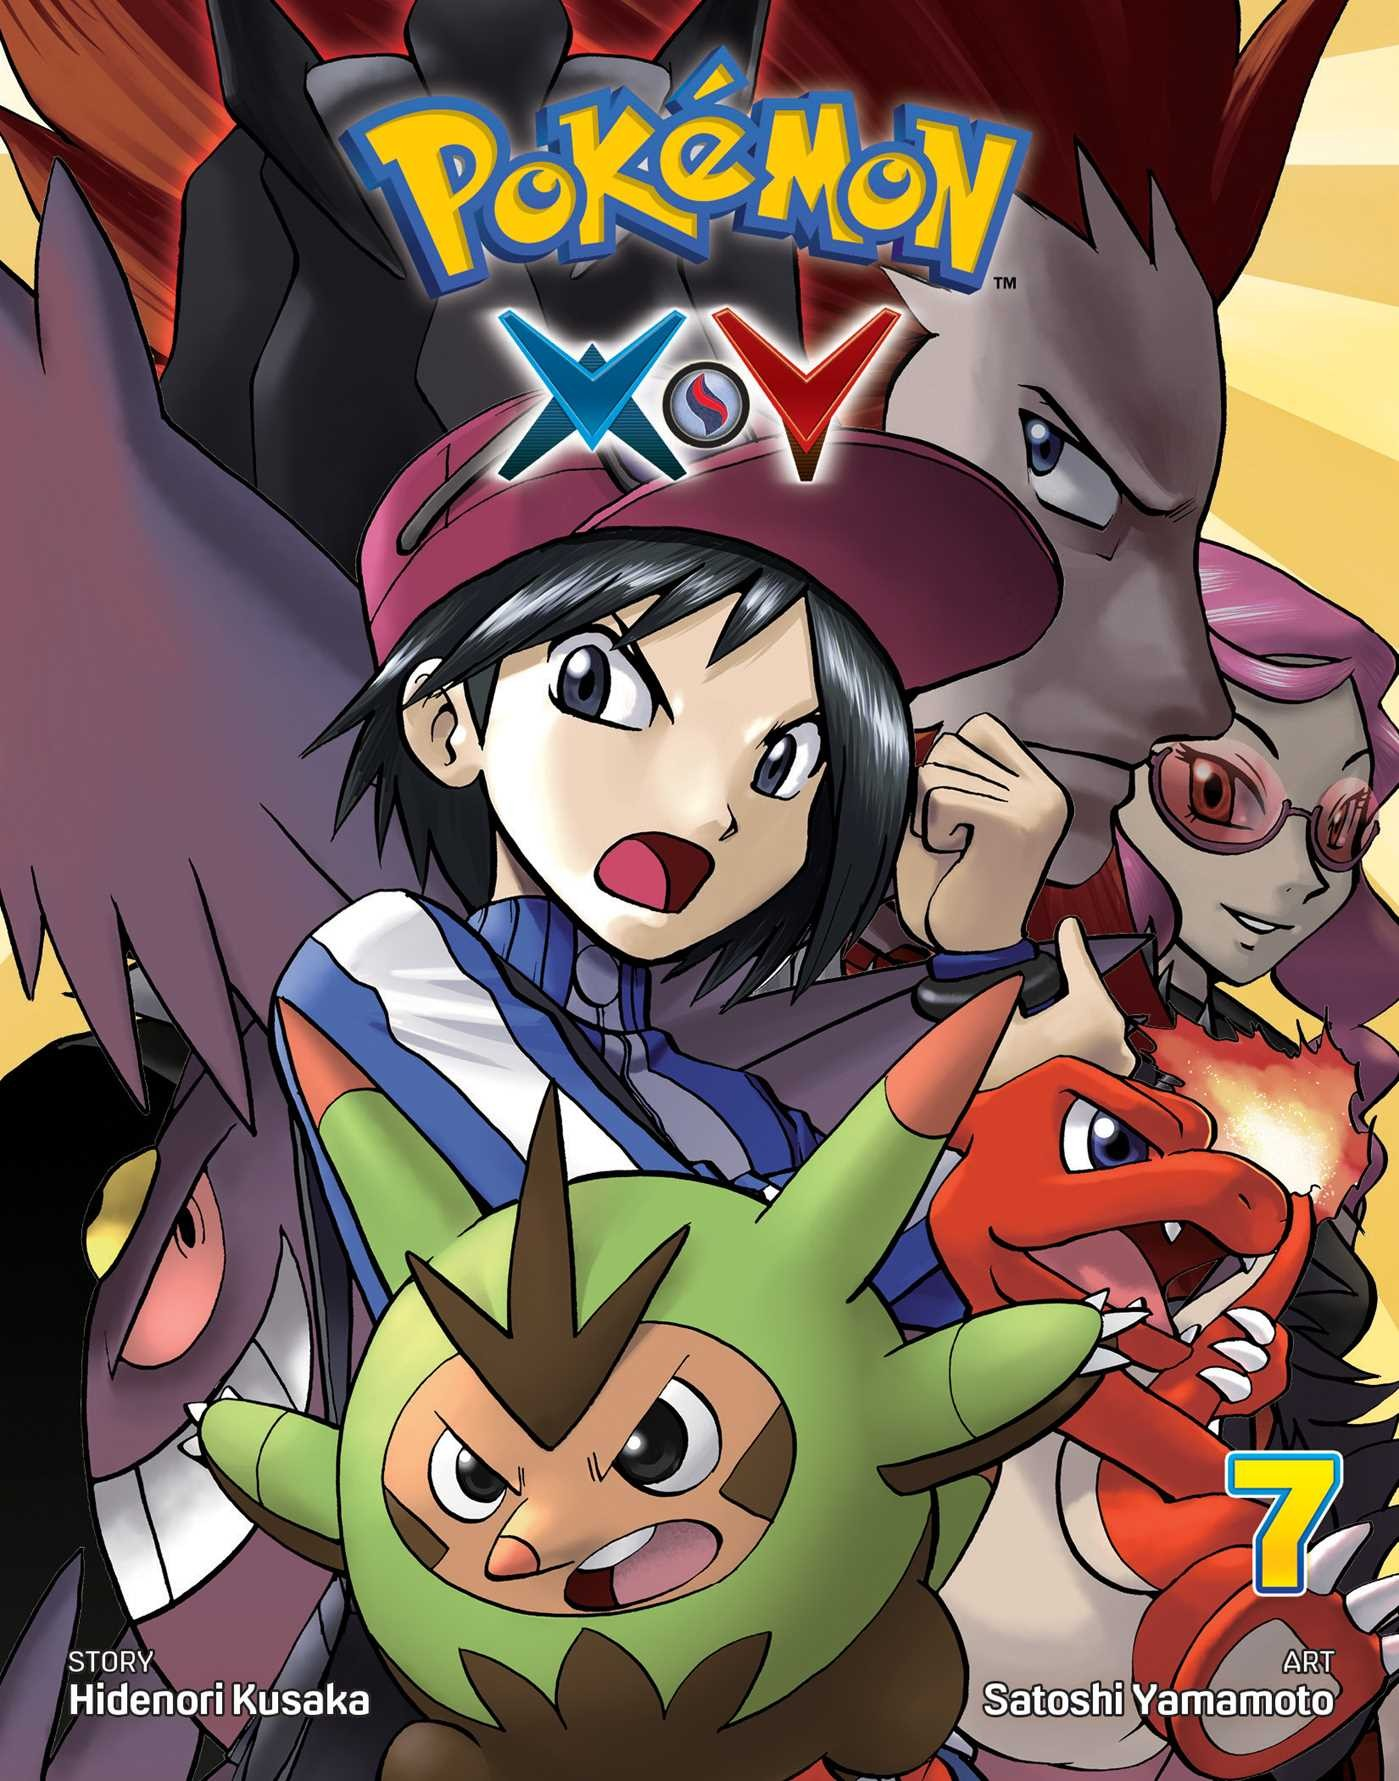 Pokémon X•Y Vol. 7 by Hidenori Kusaka